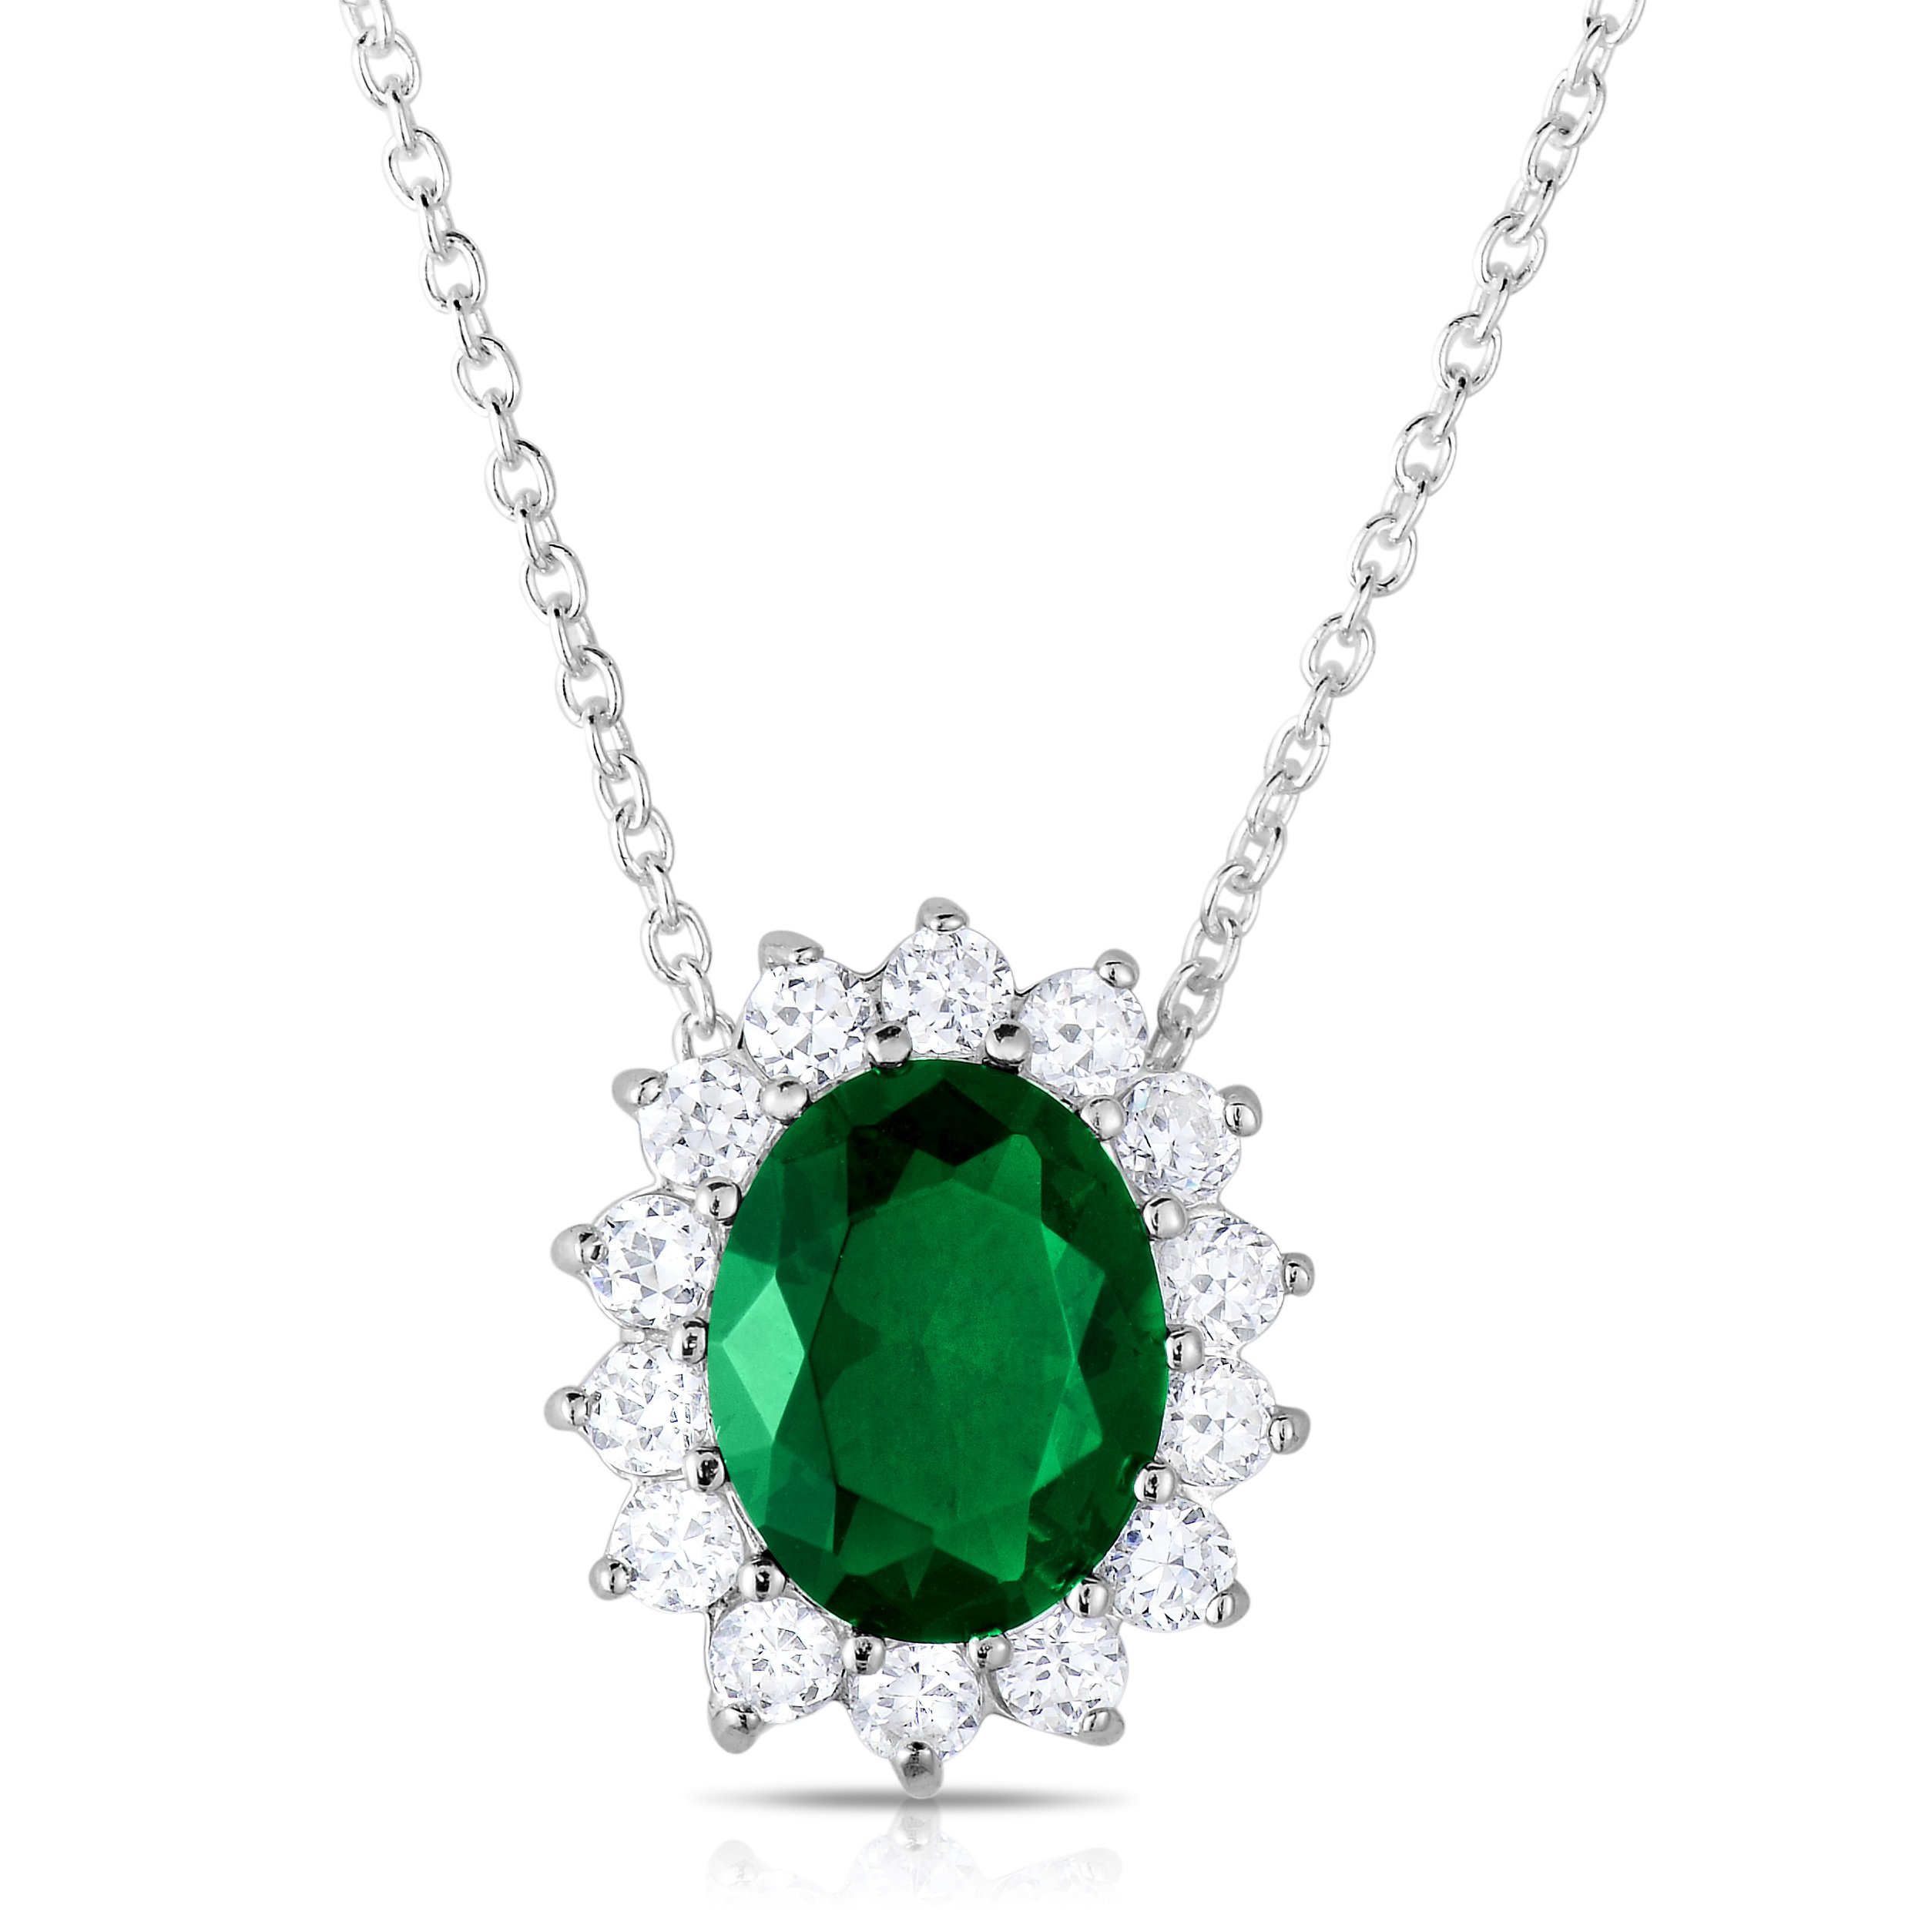 Sterling Silver Rich Green Emerald CZ with White CZ Helo Jacket Princess Diana Necklace and Pendant - 18''